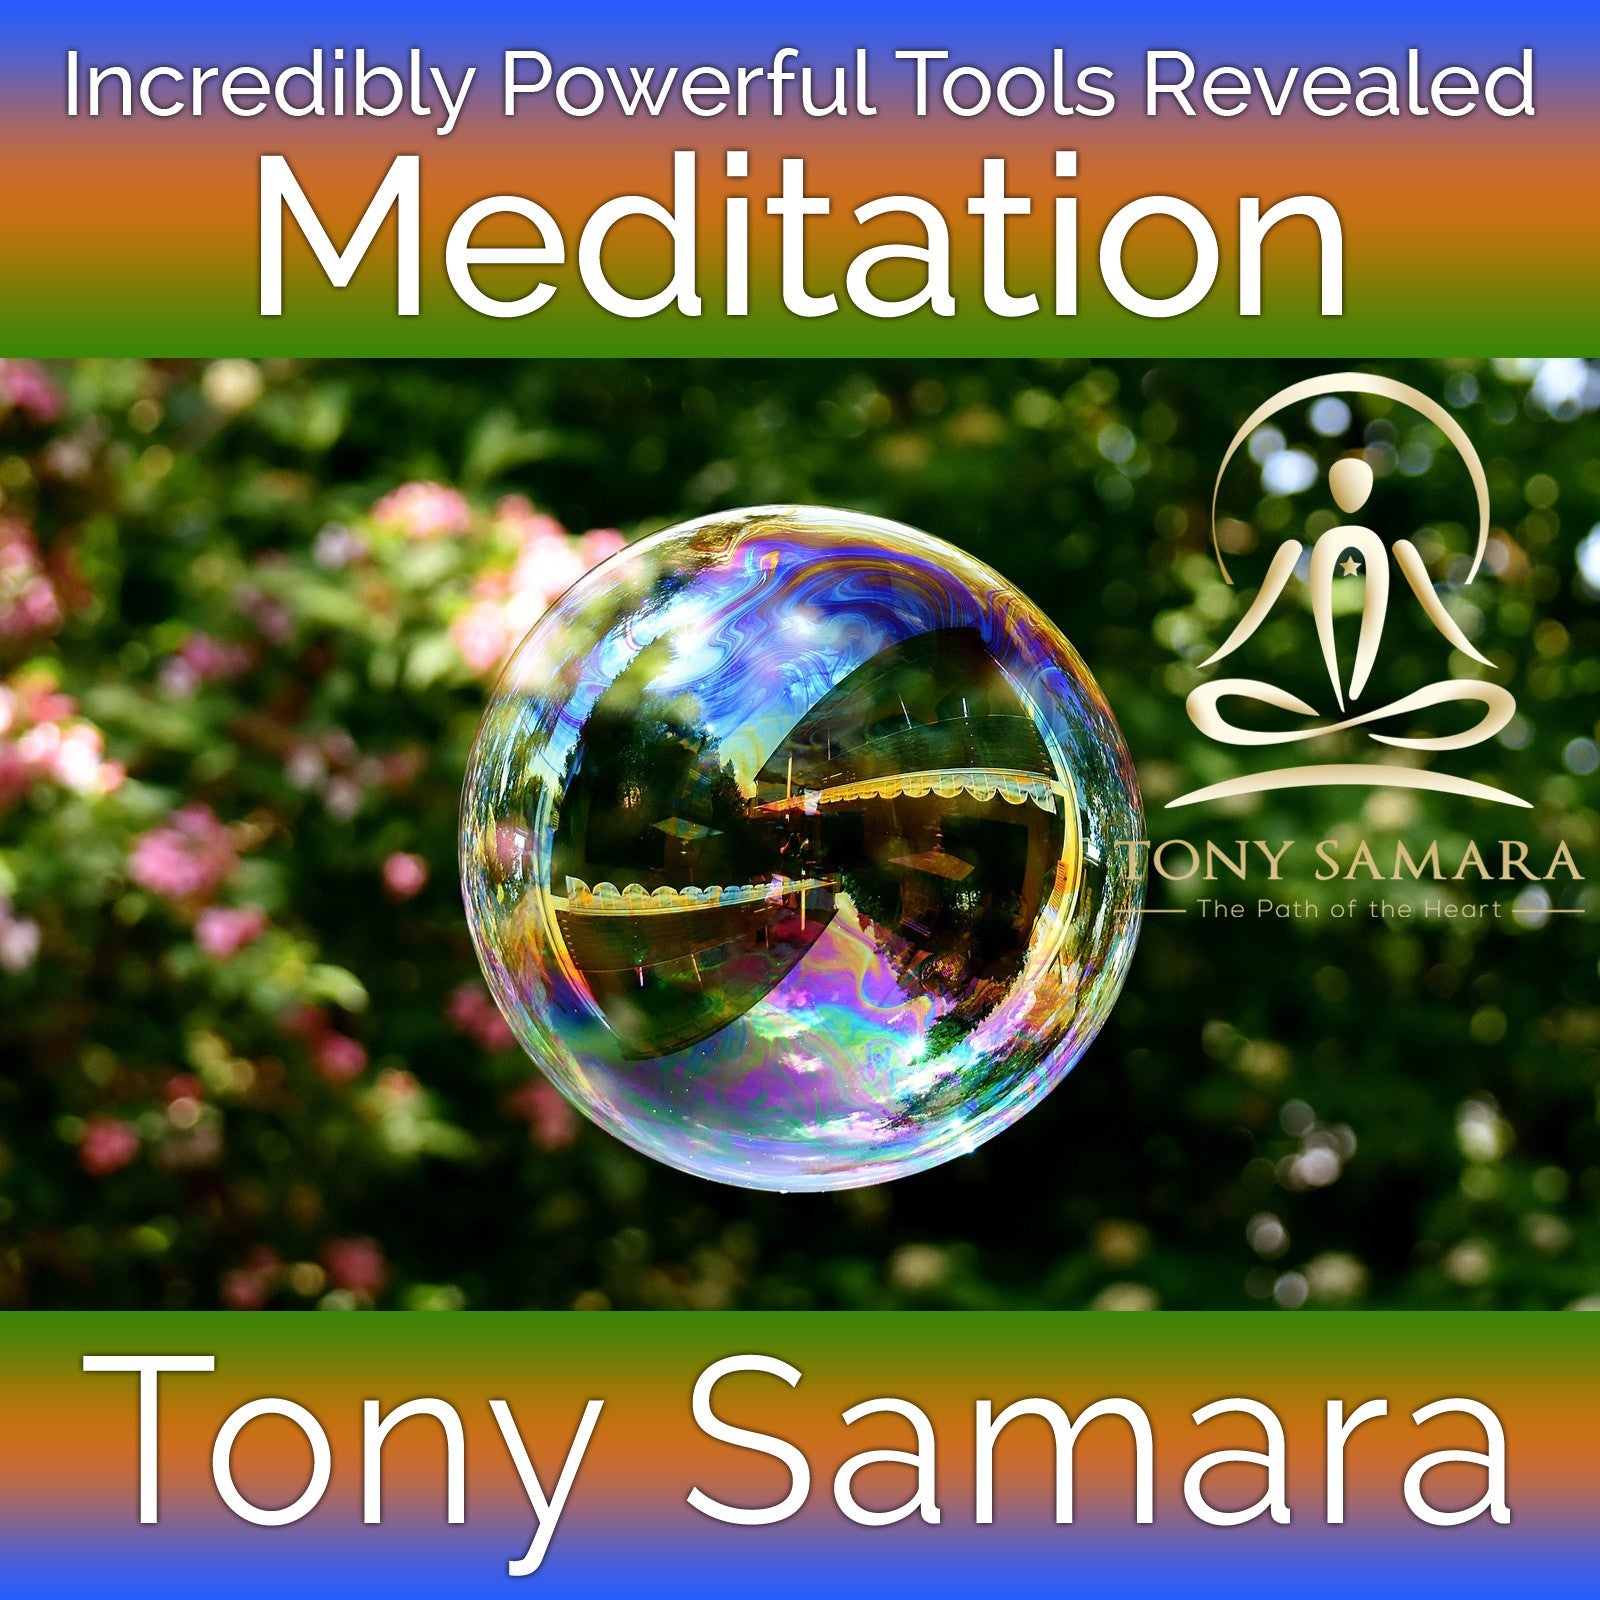 Incredibly Powerful Tools Revealed Meditation (MP3 Audio Download) - Tony Samara Meditation